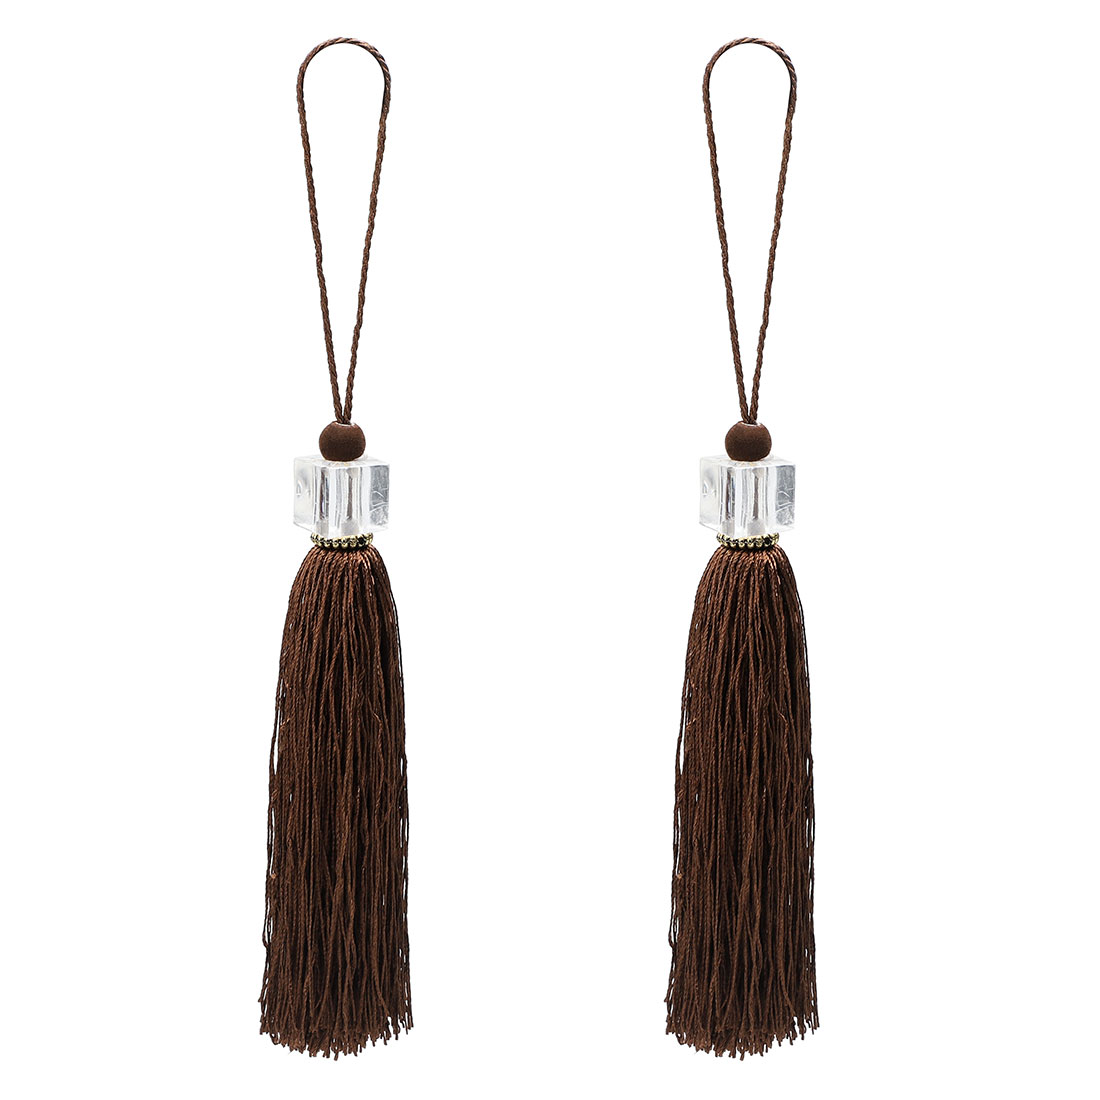 2Pcs Silky Tassels Pendant Sewing DIY Craft Supply Curtain Drapery Deco Coffee Color